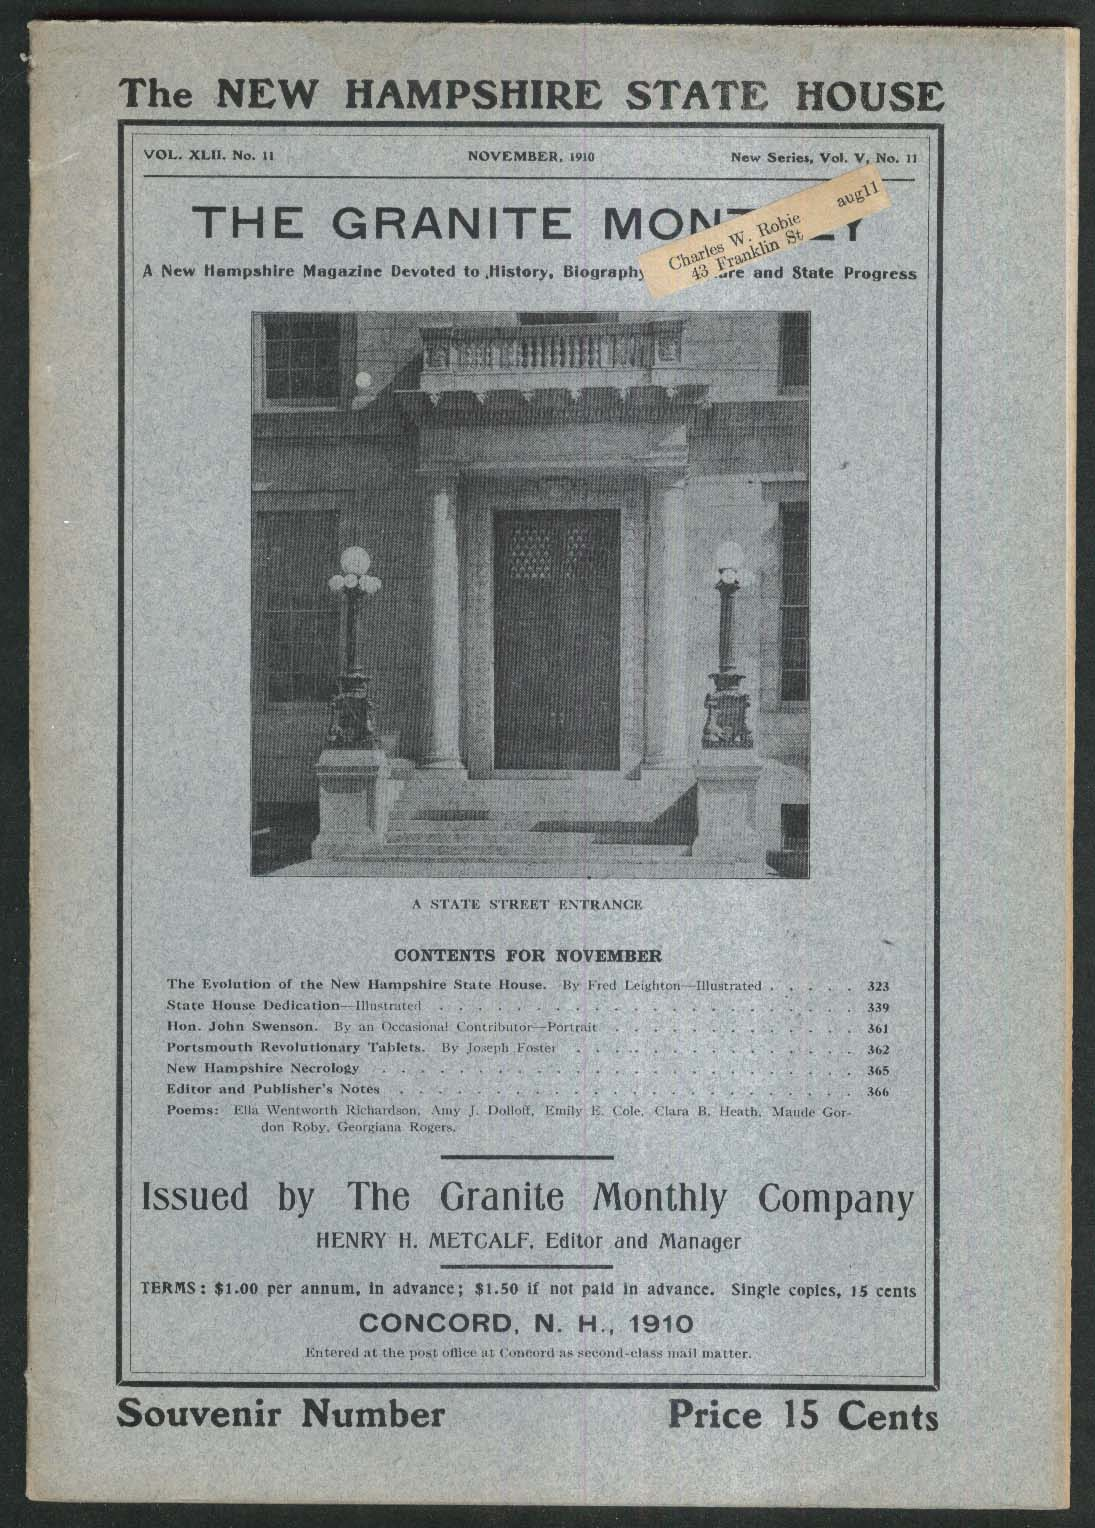 GRANITE MONTHLY New Hampshire John Swenson Portsmouth Revolutionary ++ 11 1910